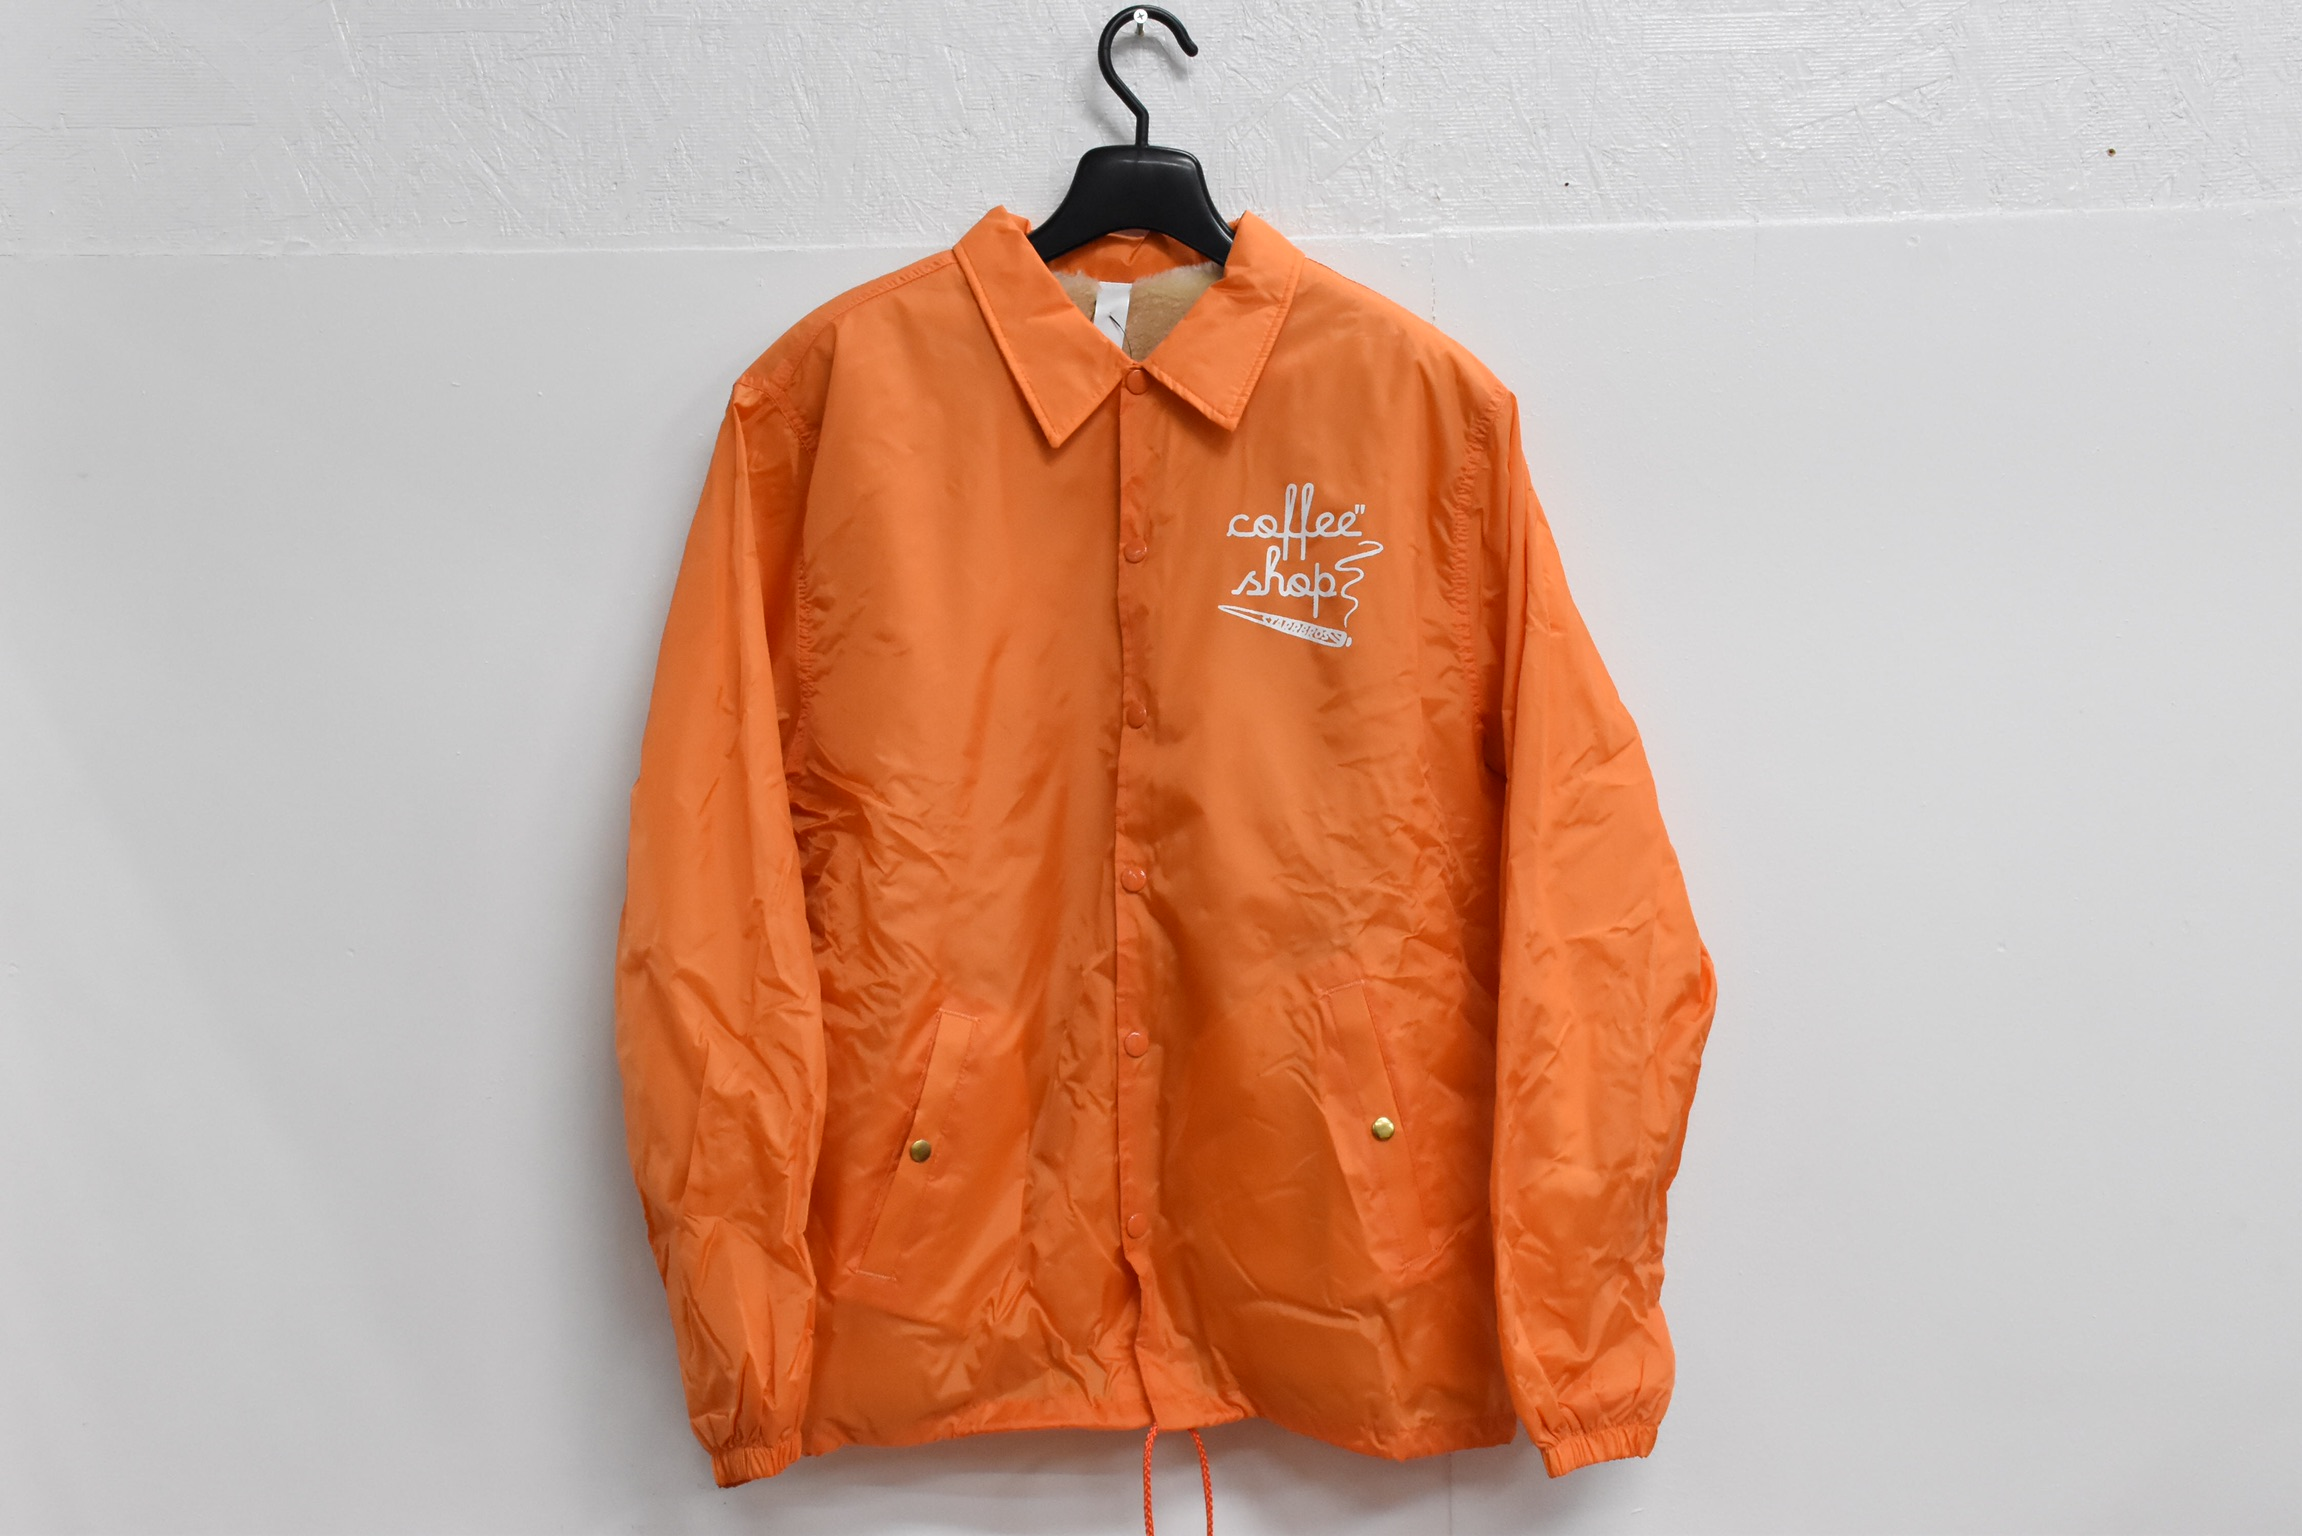 STARRBROS_NEW_COACH_JKT_ORANGE